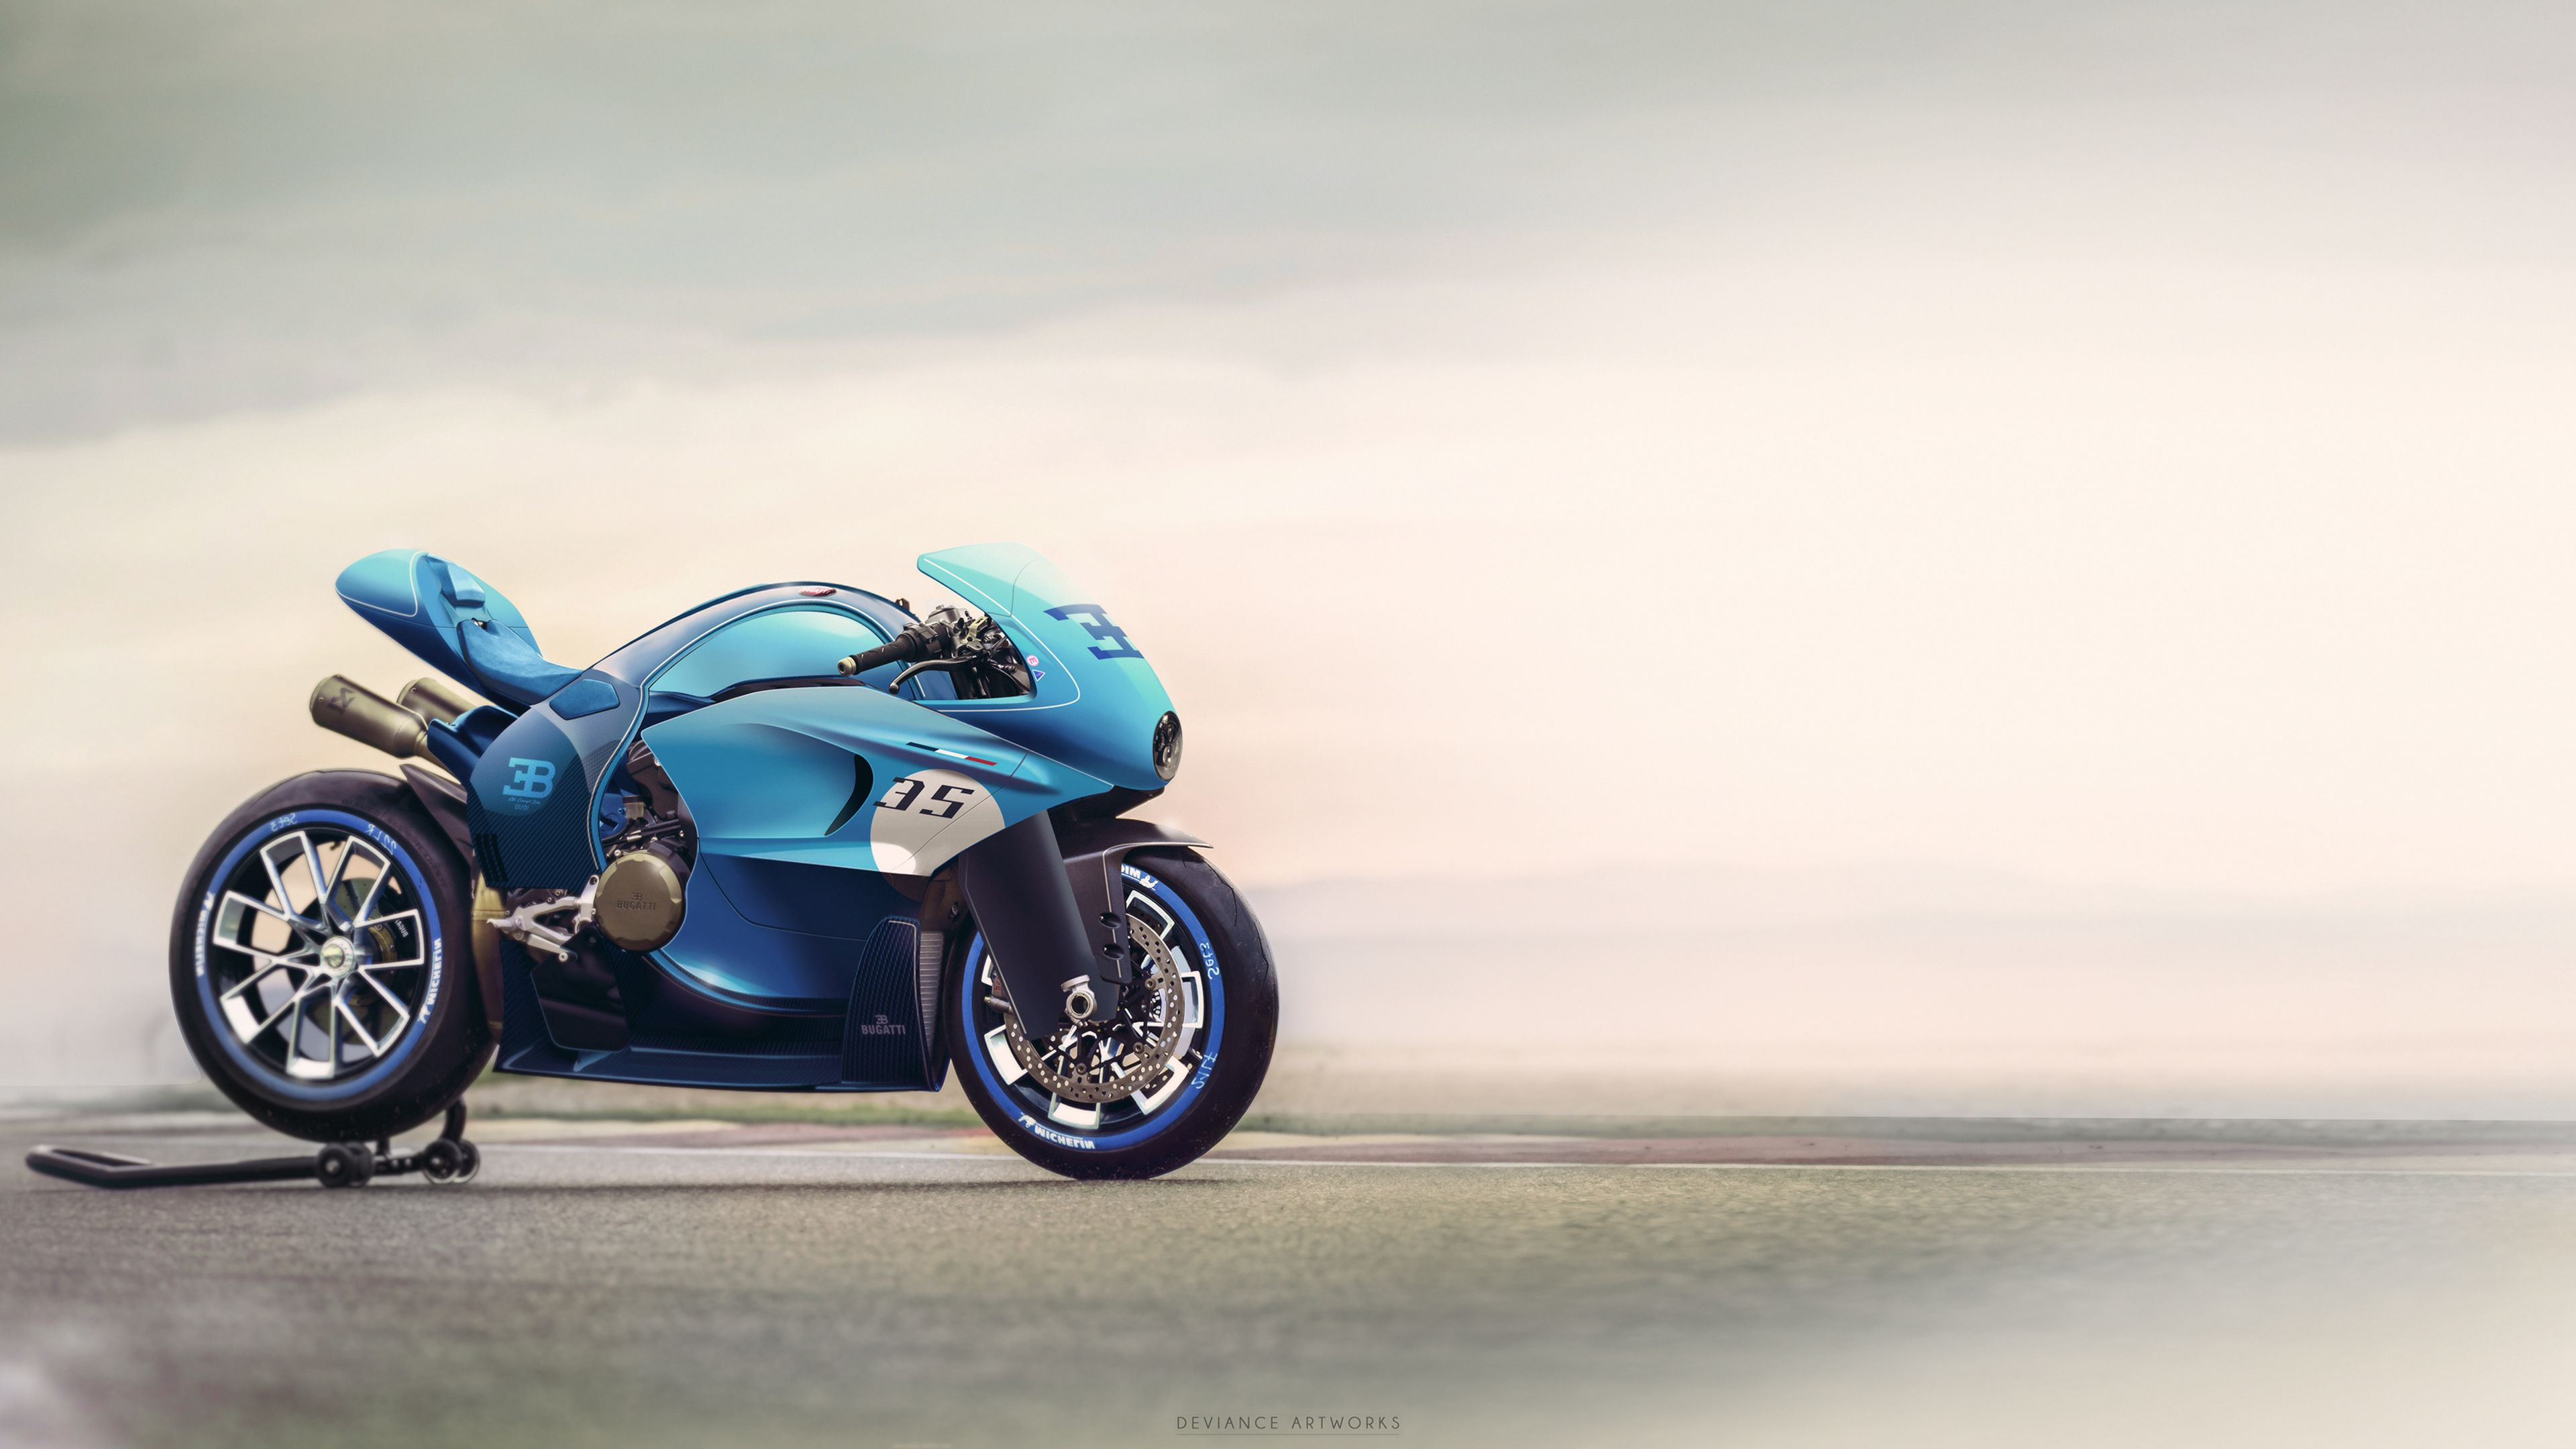 Wallpaper 4k Bugatti Concept Bike 4k 4k Wallpapers Artist